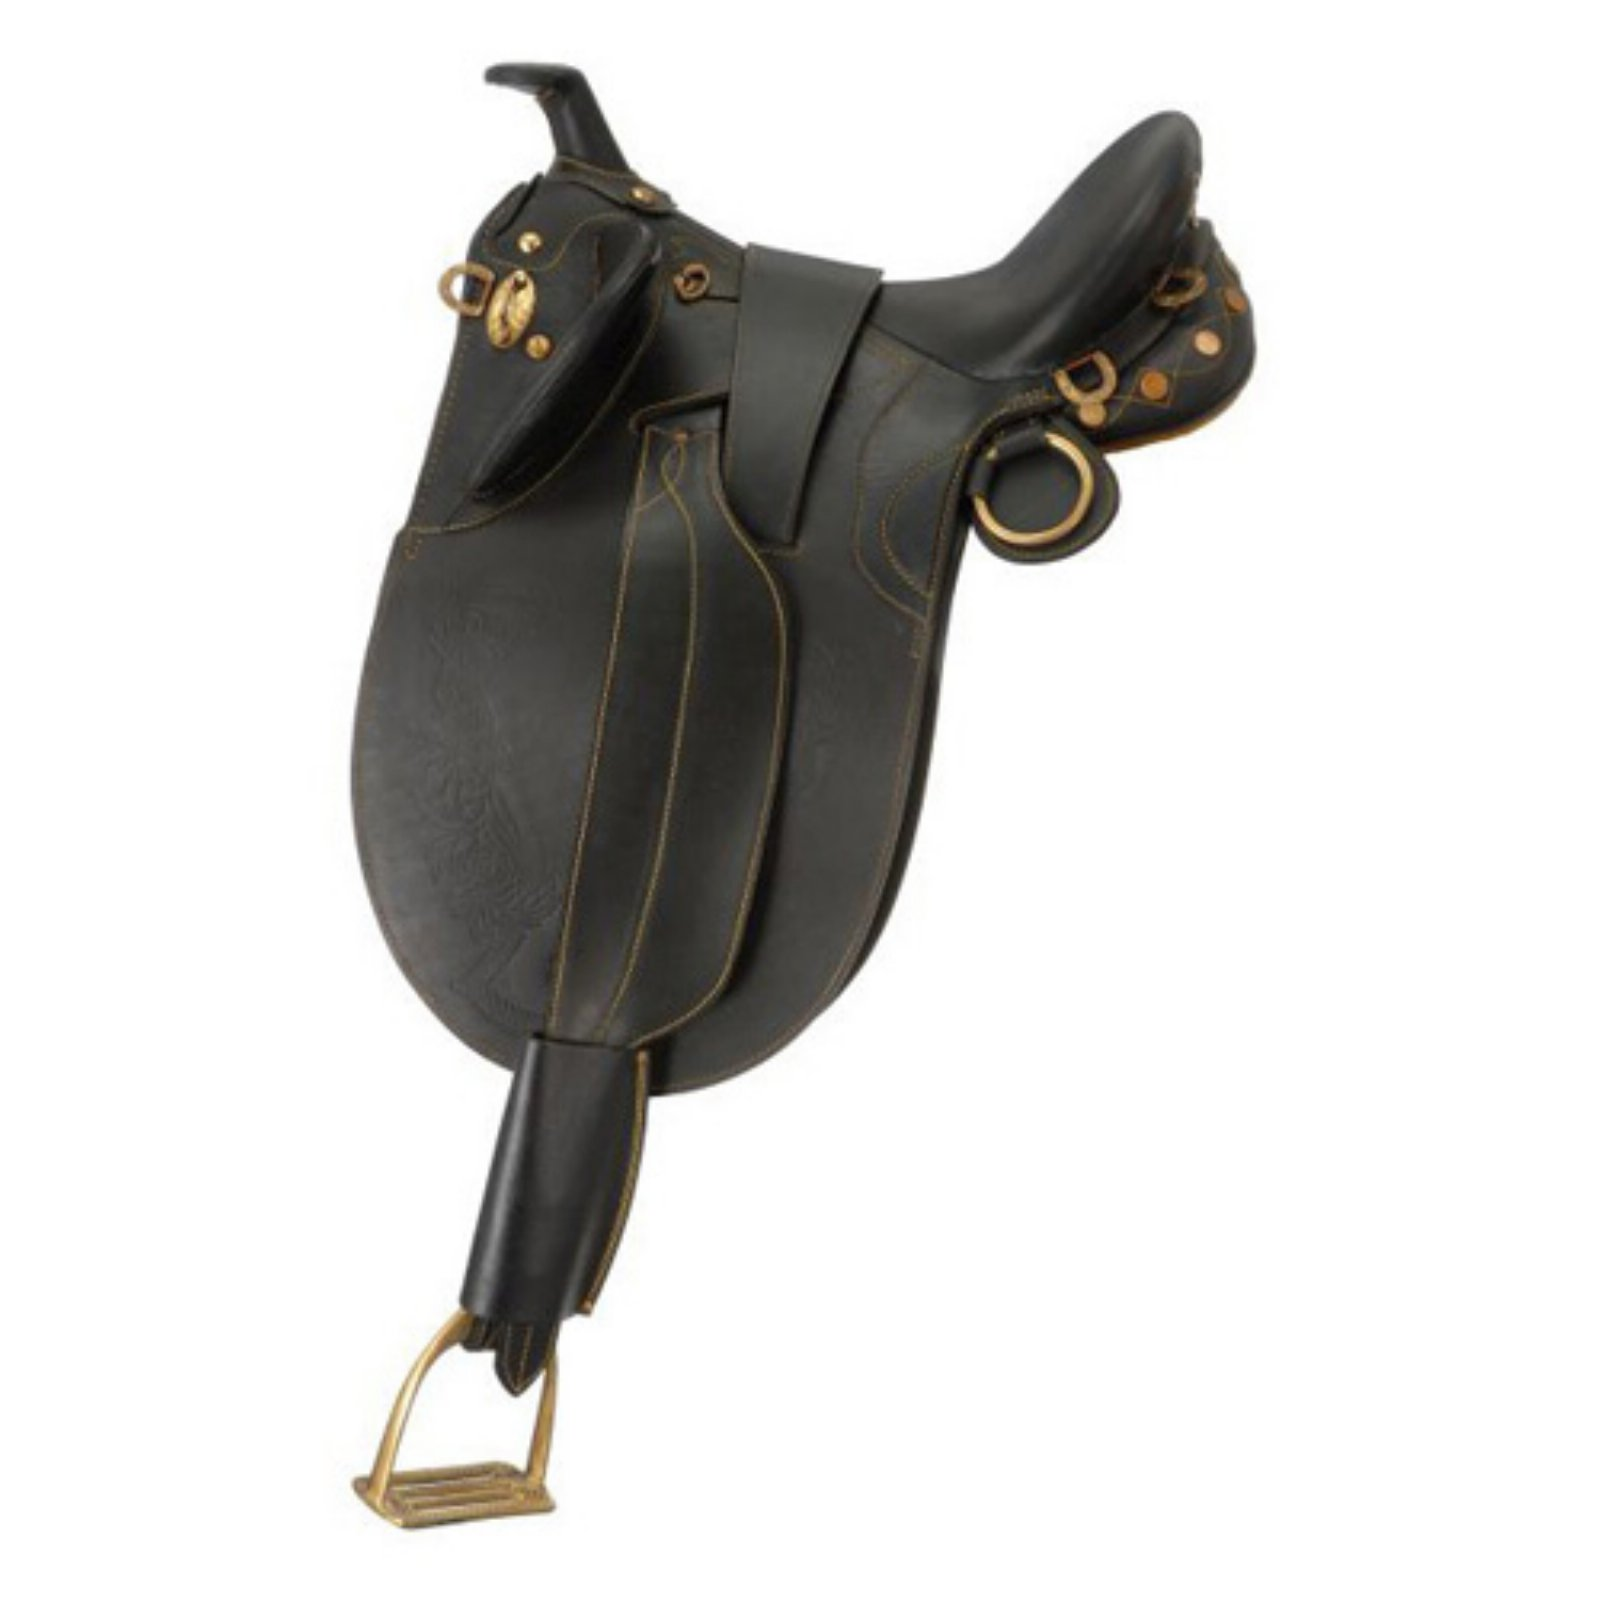 Australian Outrider Collection Stock Poley Saddle with Horn by JT International